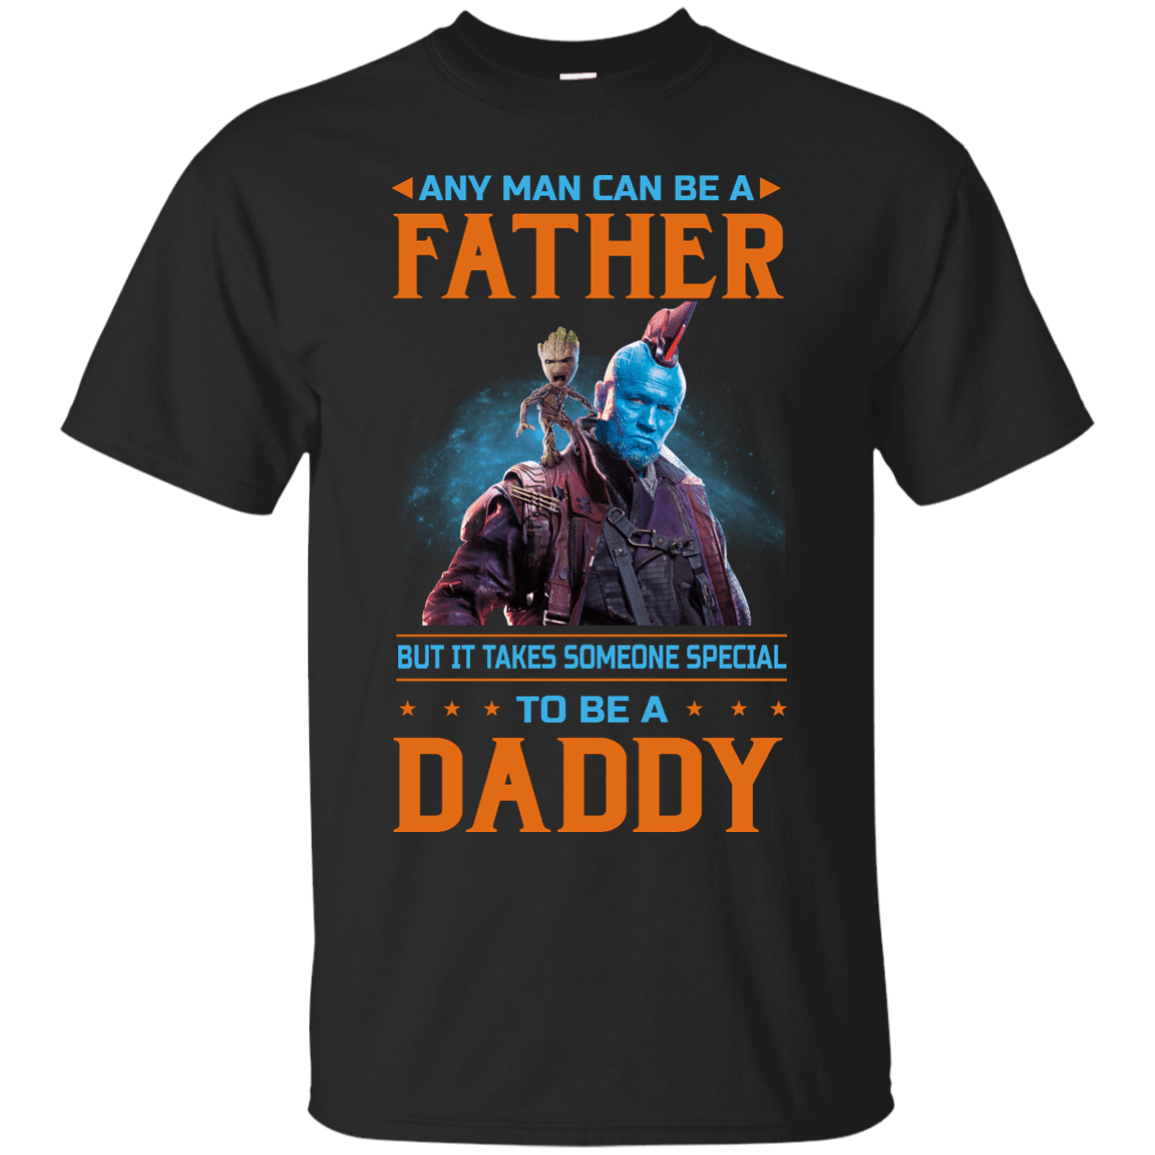 Guardian of the Galaxy 2 shirt, any man can be a father coffee t shirt